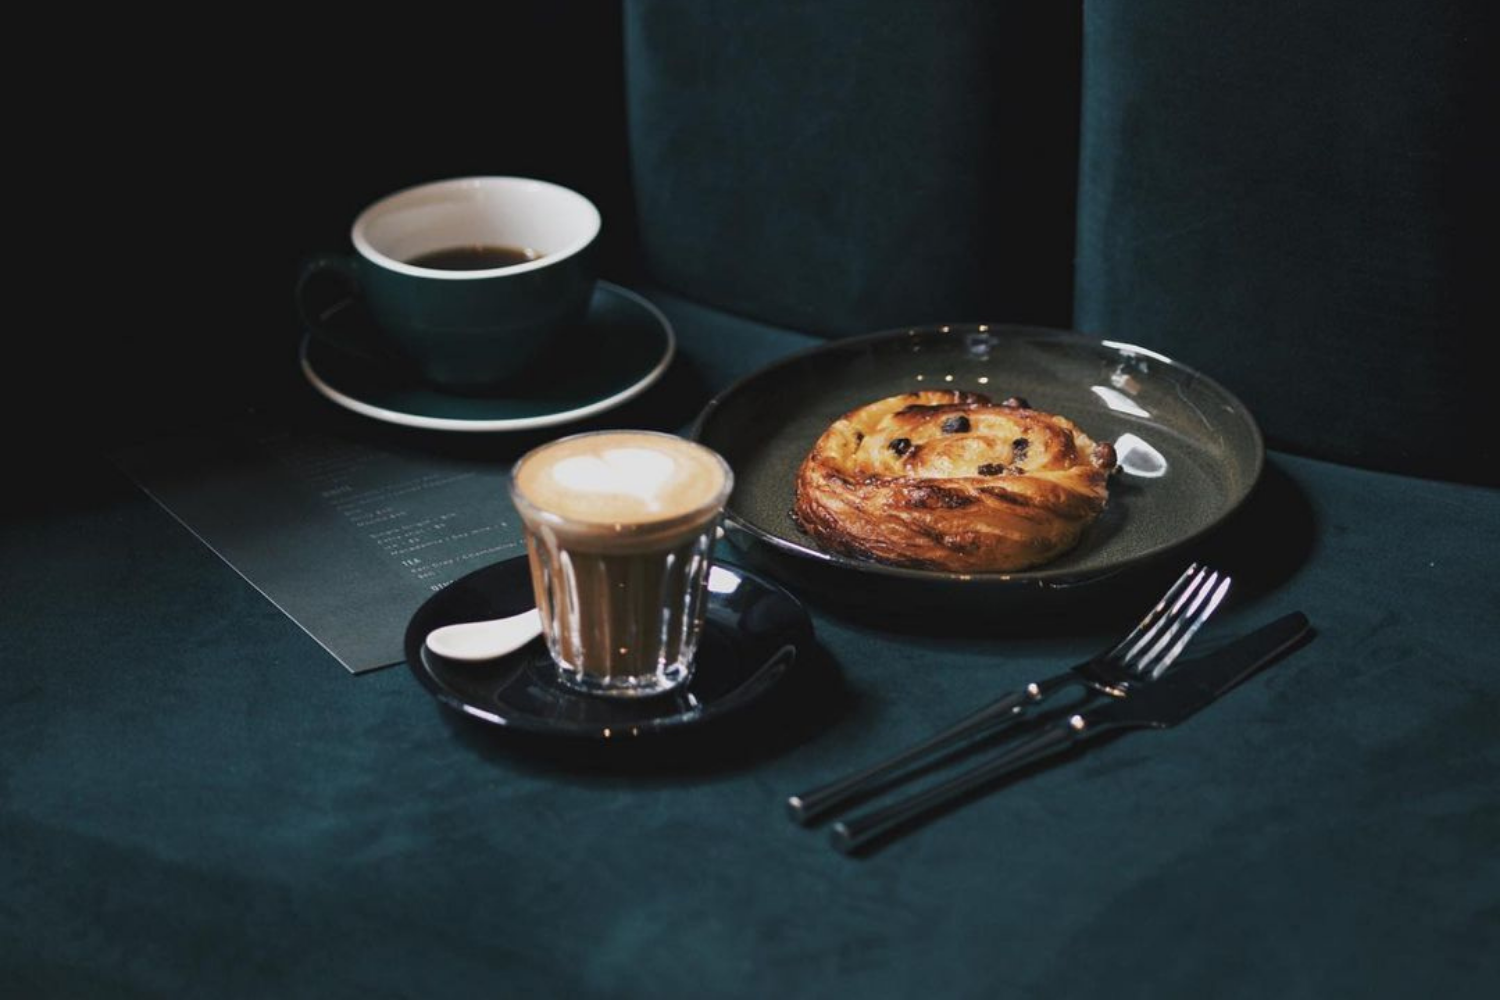 The Best Cafes And Coffee Shops In Sheung Wan